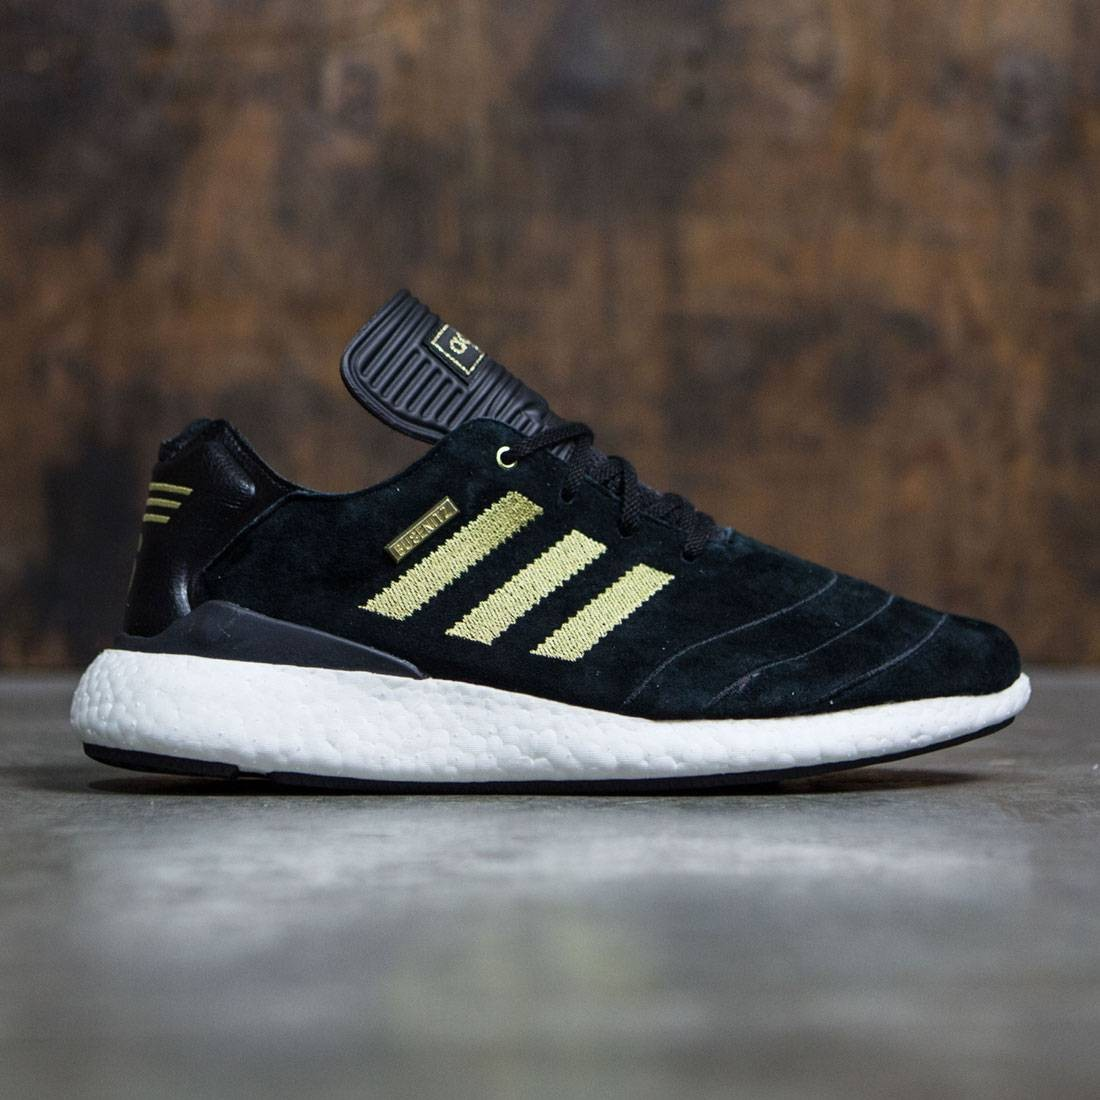 8e24b8a71f721 Adidas Men Busenitz Pure Boost 10 Year Anniversary black gold metallic  footwear white